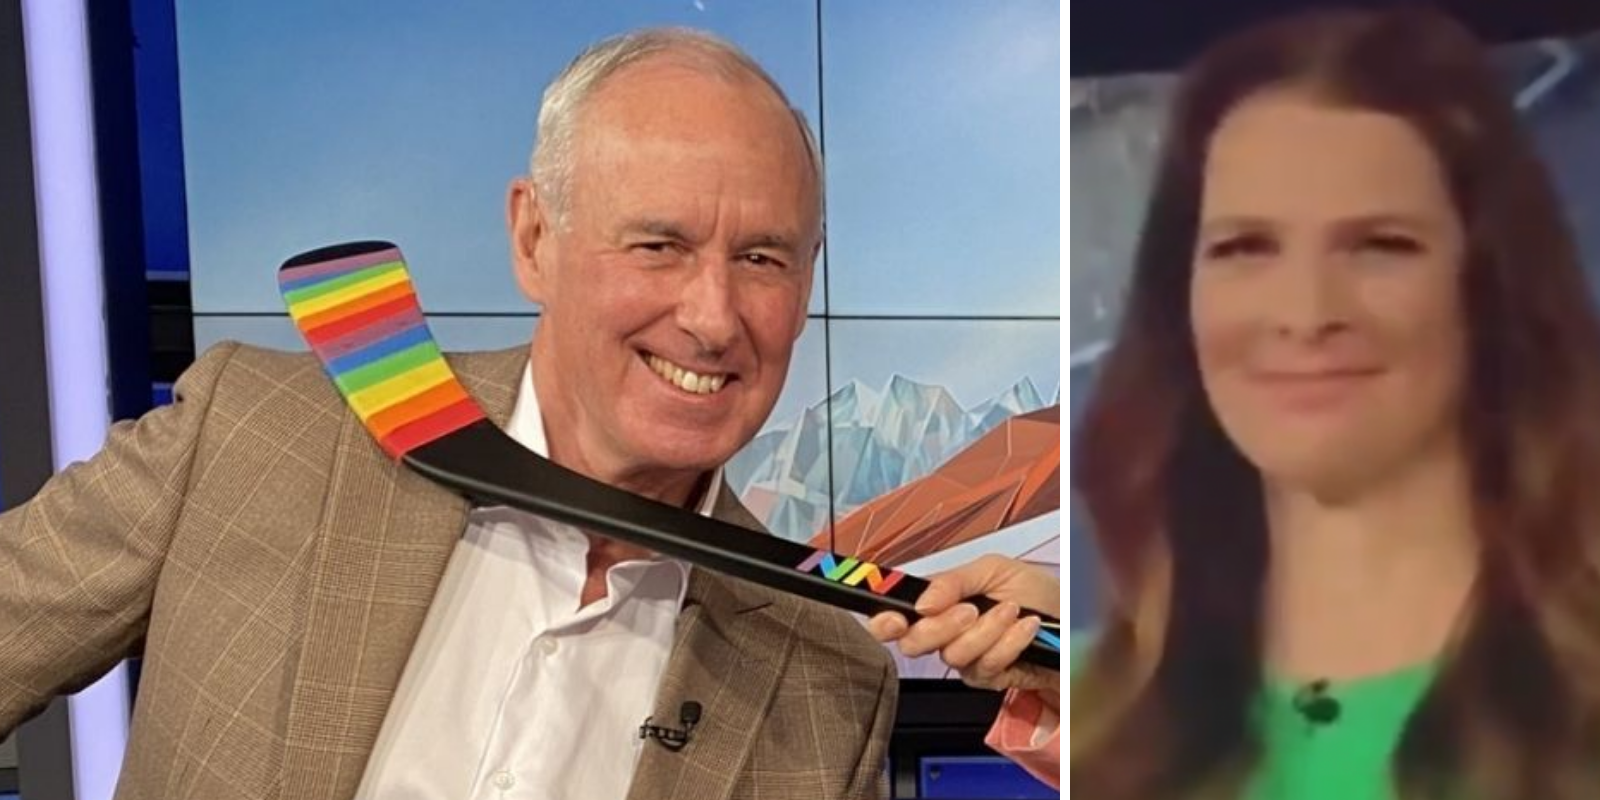 BREAKING: Ron MacLean apologizes for 'homophobic' joke as fans demand his removal from Hockey Night in Canada